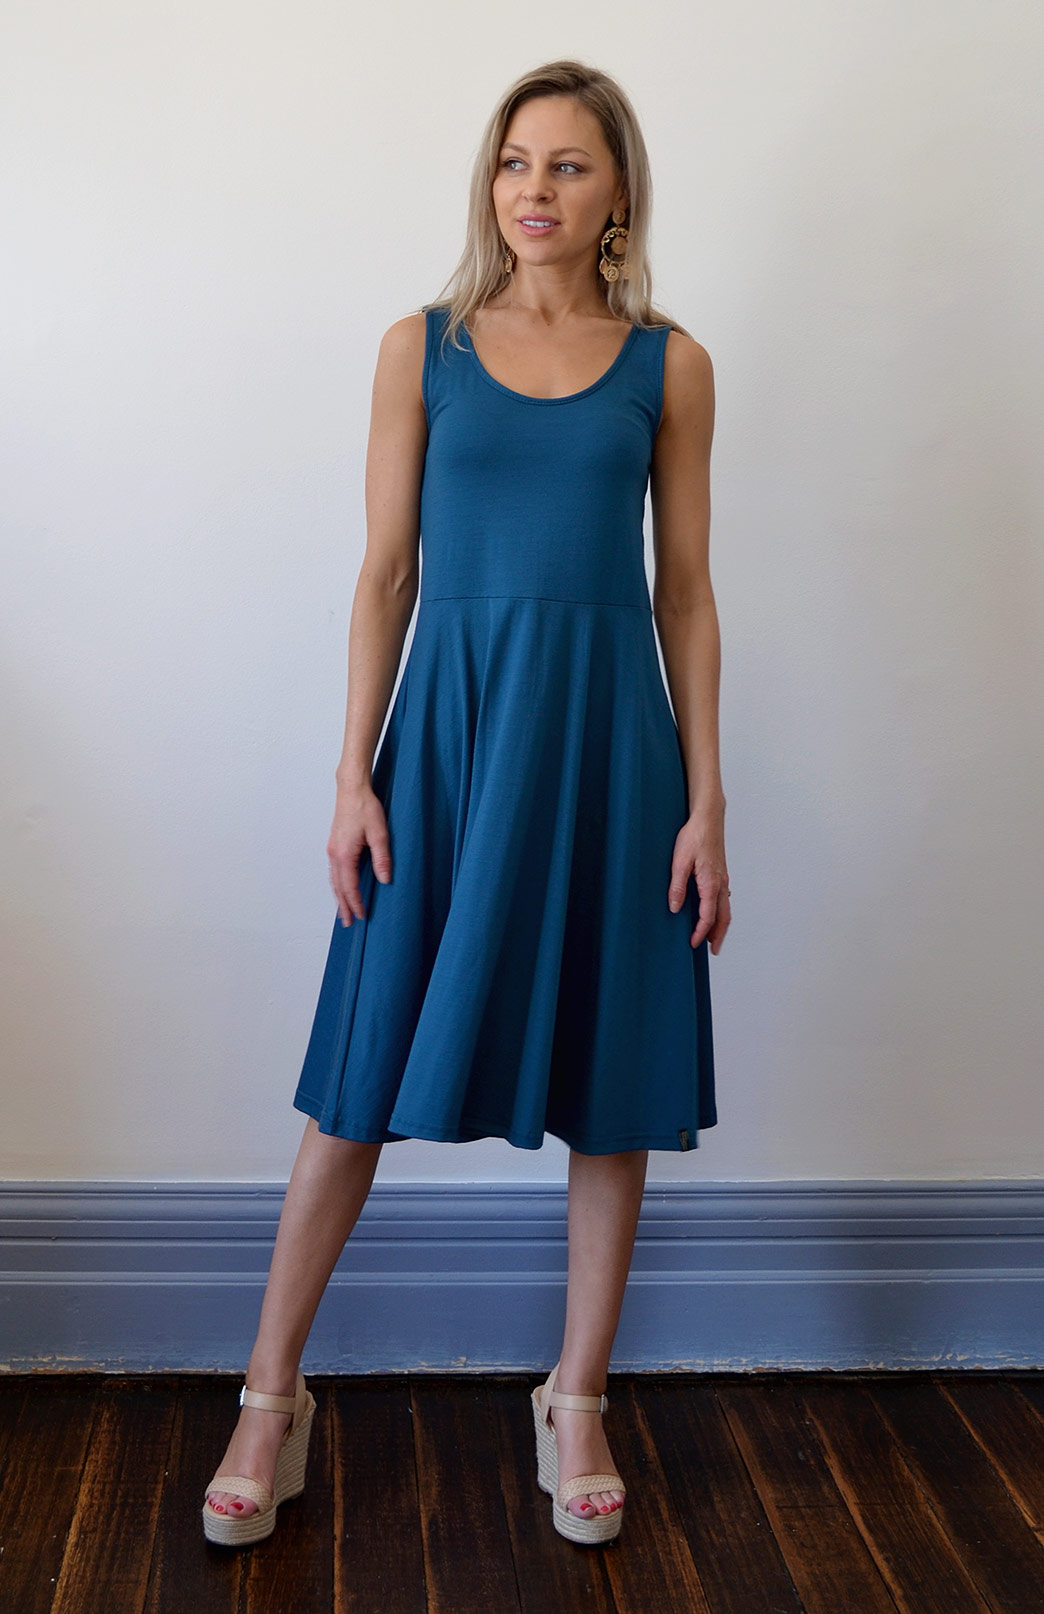 Sleeveless Jackie Dress - Smitten Merino Tasmania Australia